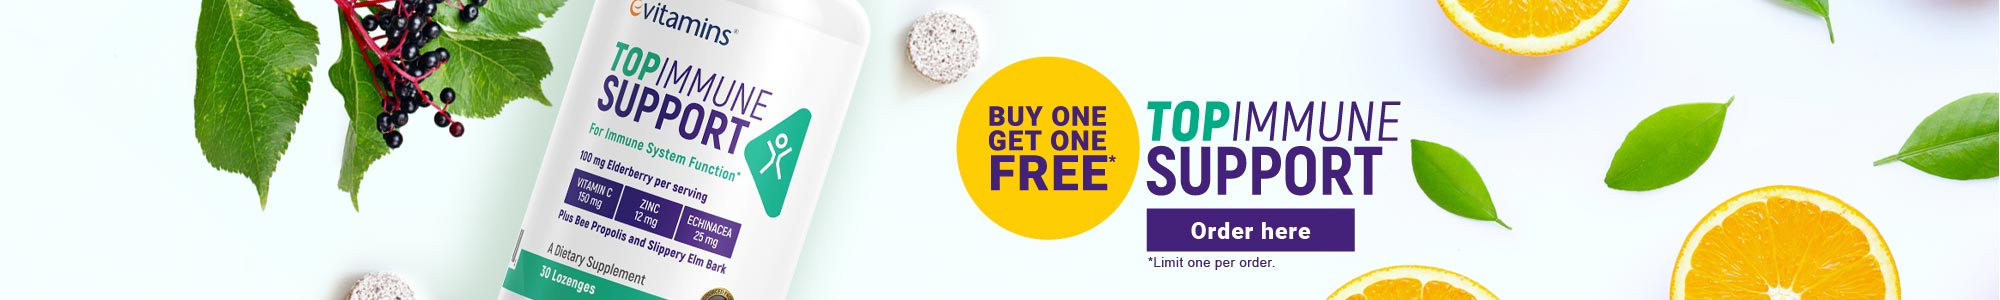 Buy one get one free! eVitamins Top Immune Support. Order here.